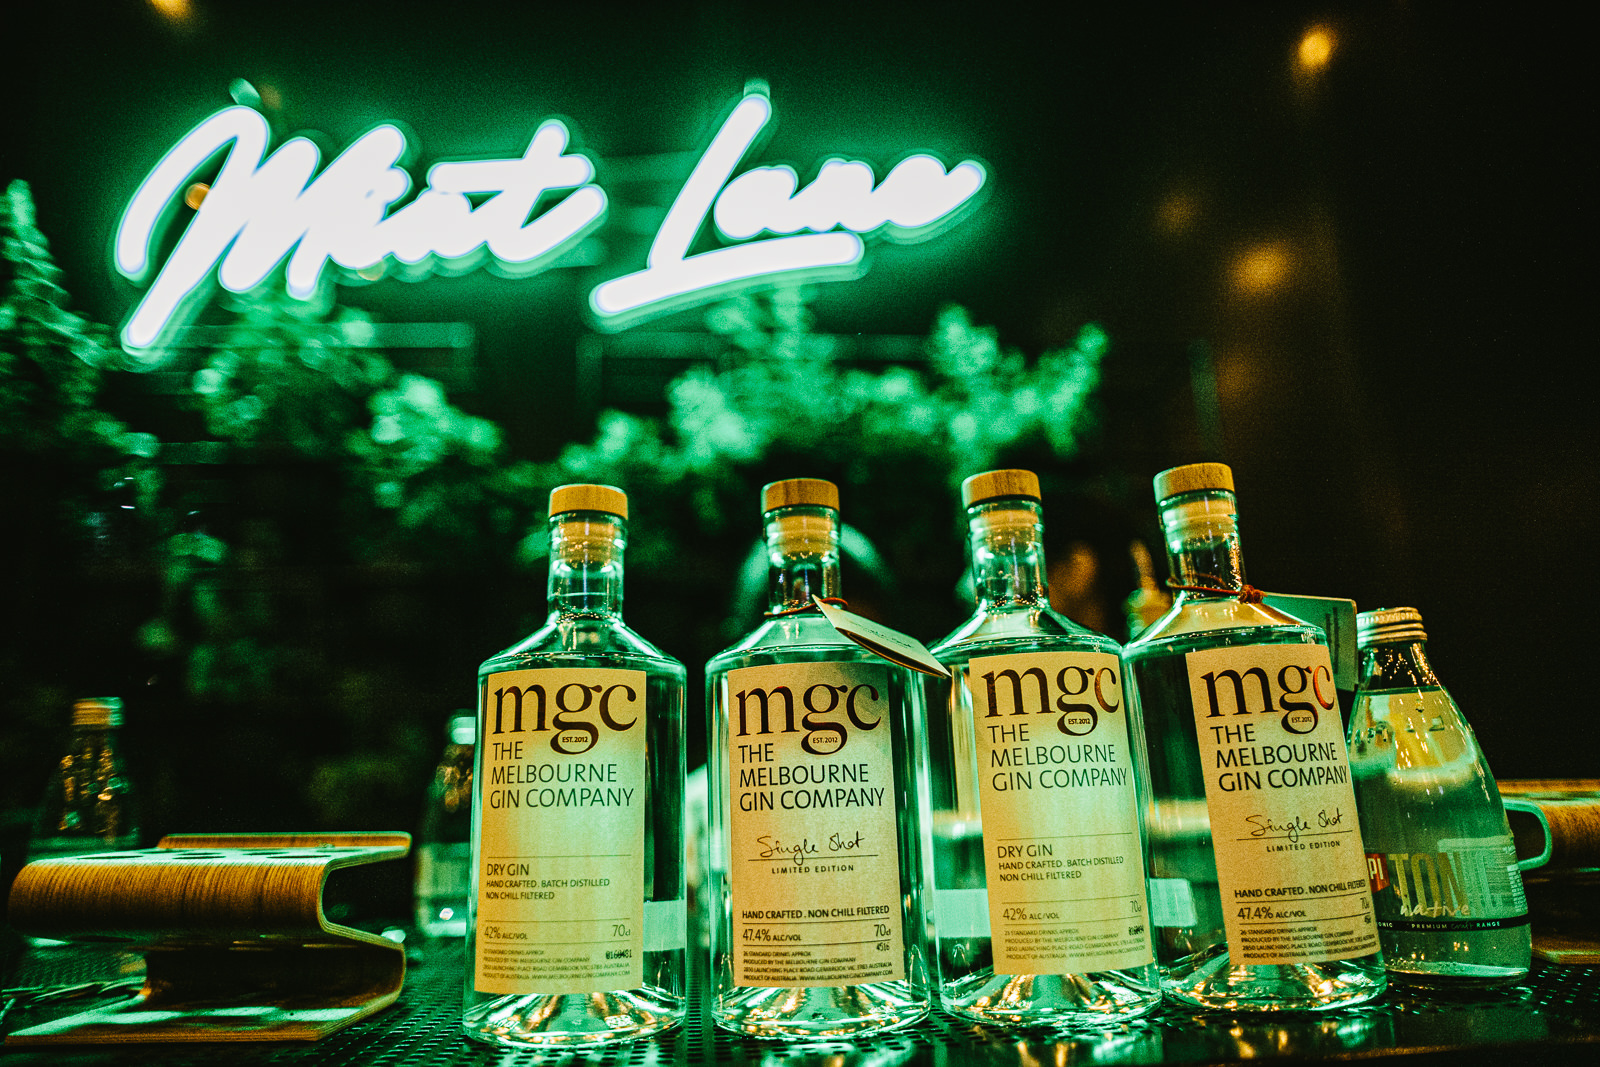 mint lane with mgc gin